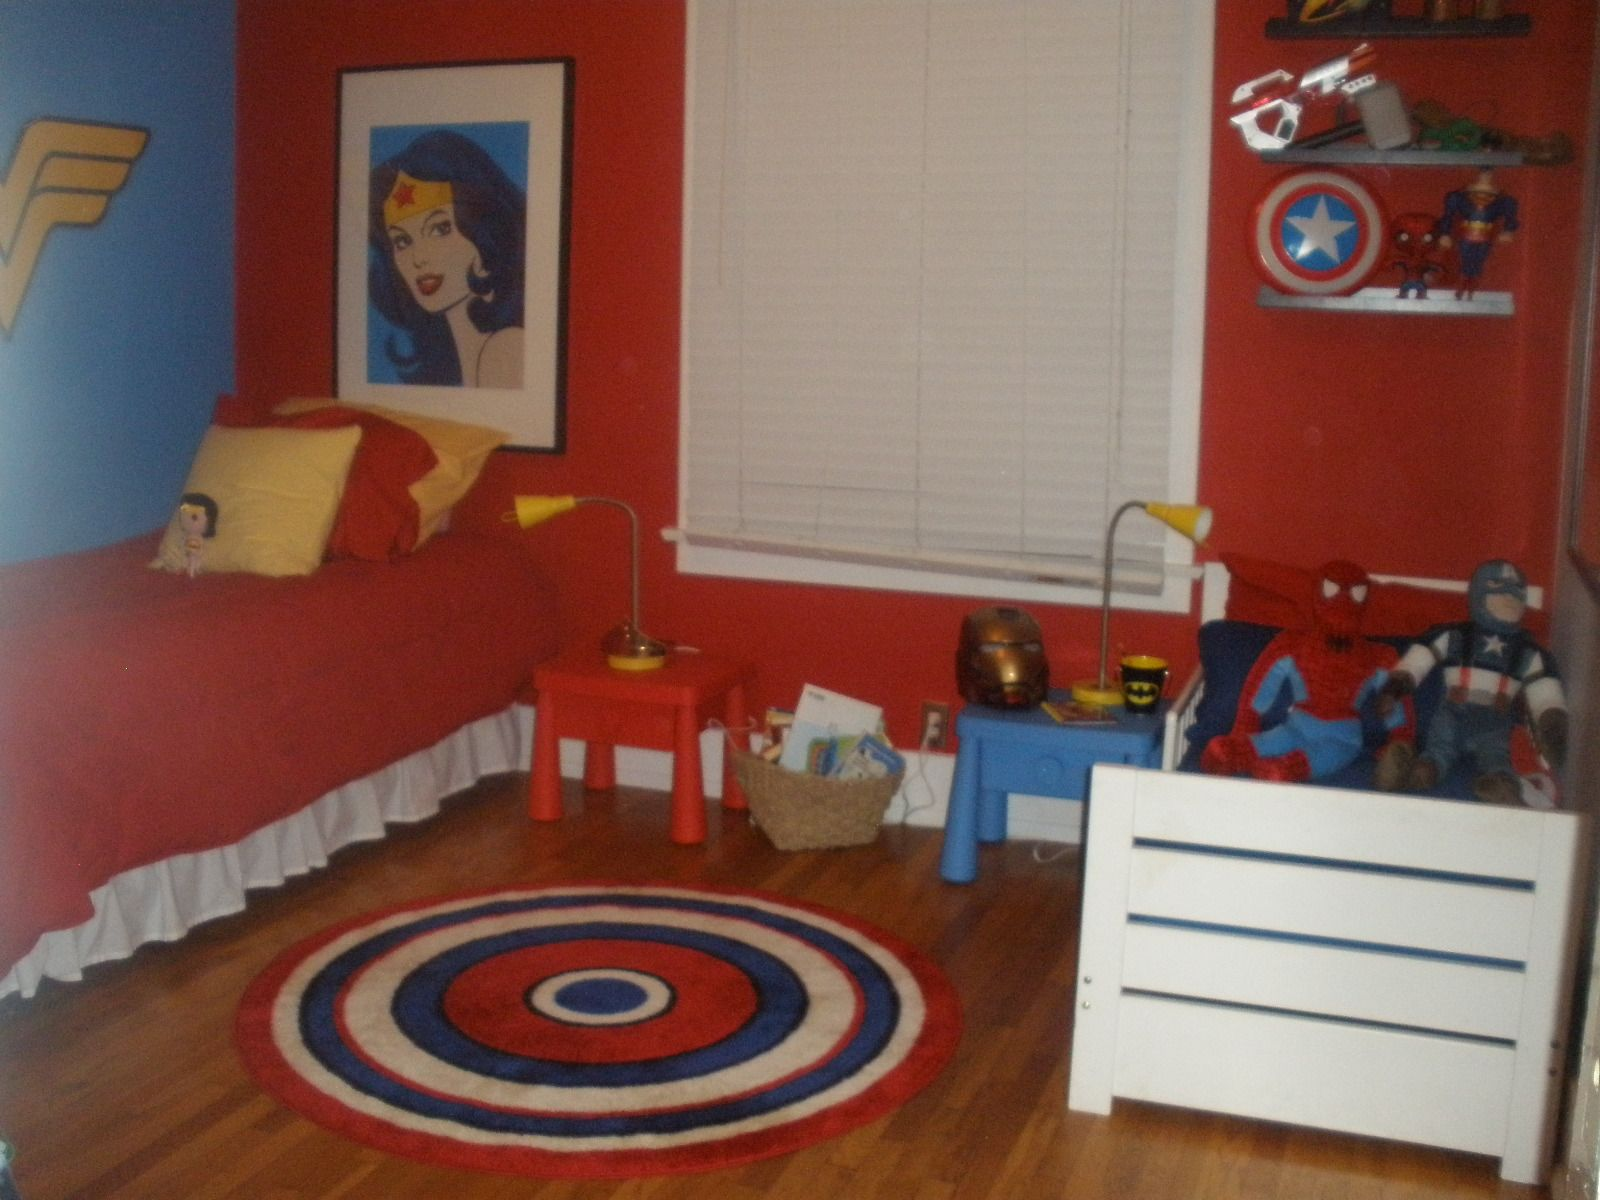 28 Teen Boy Bedding Sets with Superheroes Marvel Themed